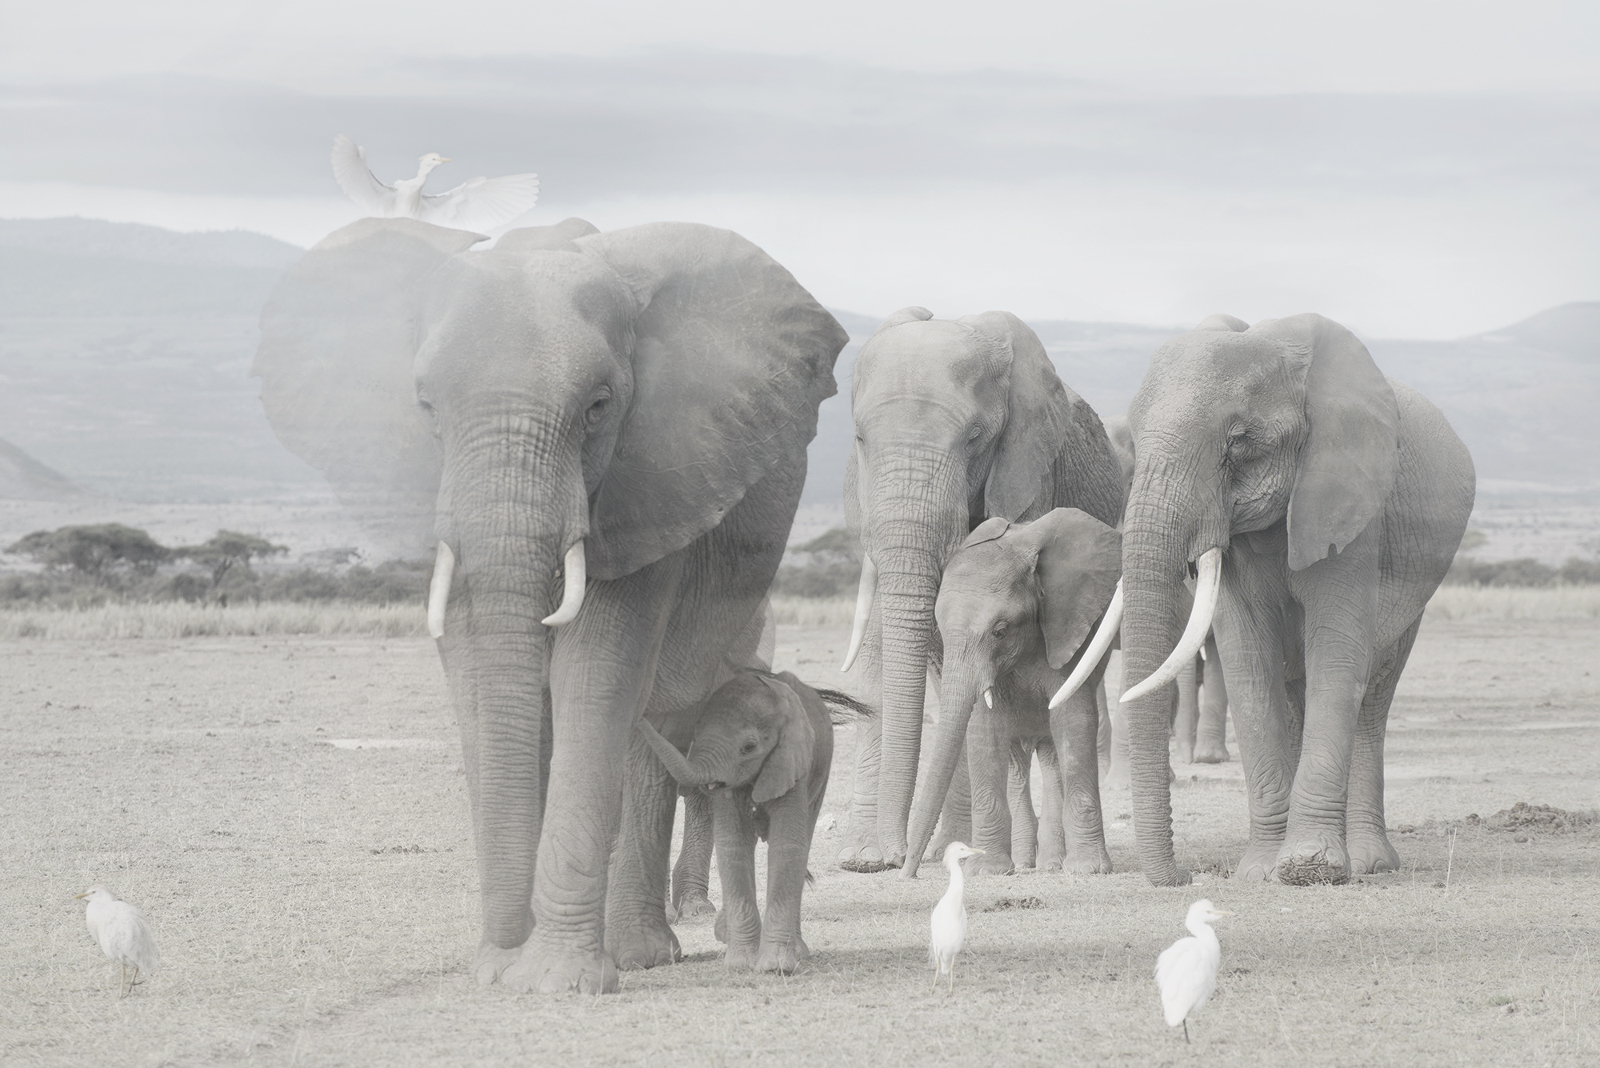 The Day My World Changed When I Met an Elephant